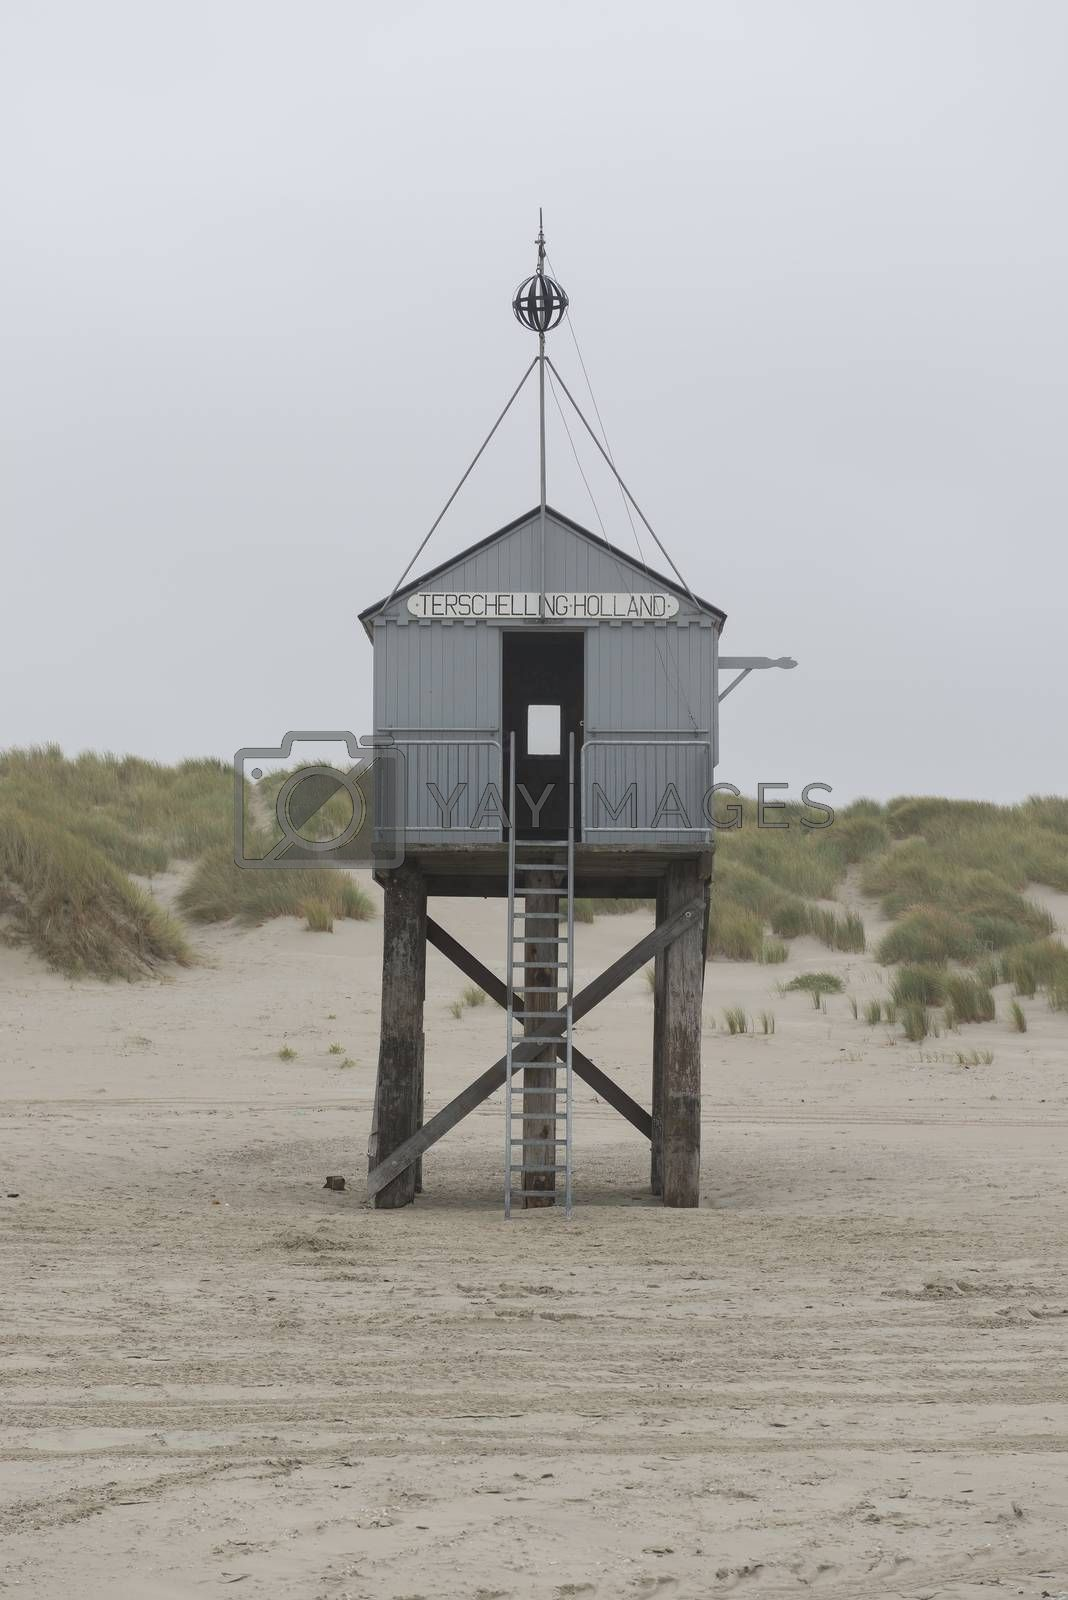 The sea cottage of Terschelling is from the end of 2015 posted near pole 24 on the North Sea Beach at the dunes on a larger and more secure distance from the North Sea on a new location. Picture was taken on a foggy and drizzly autumn day